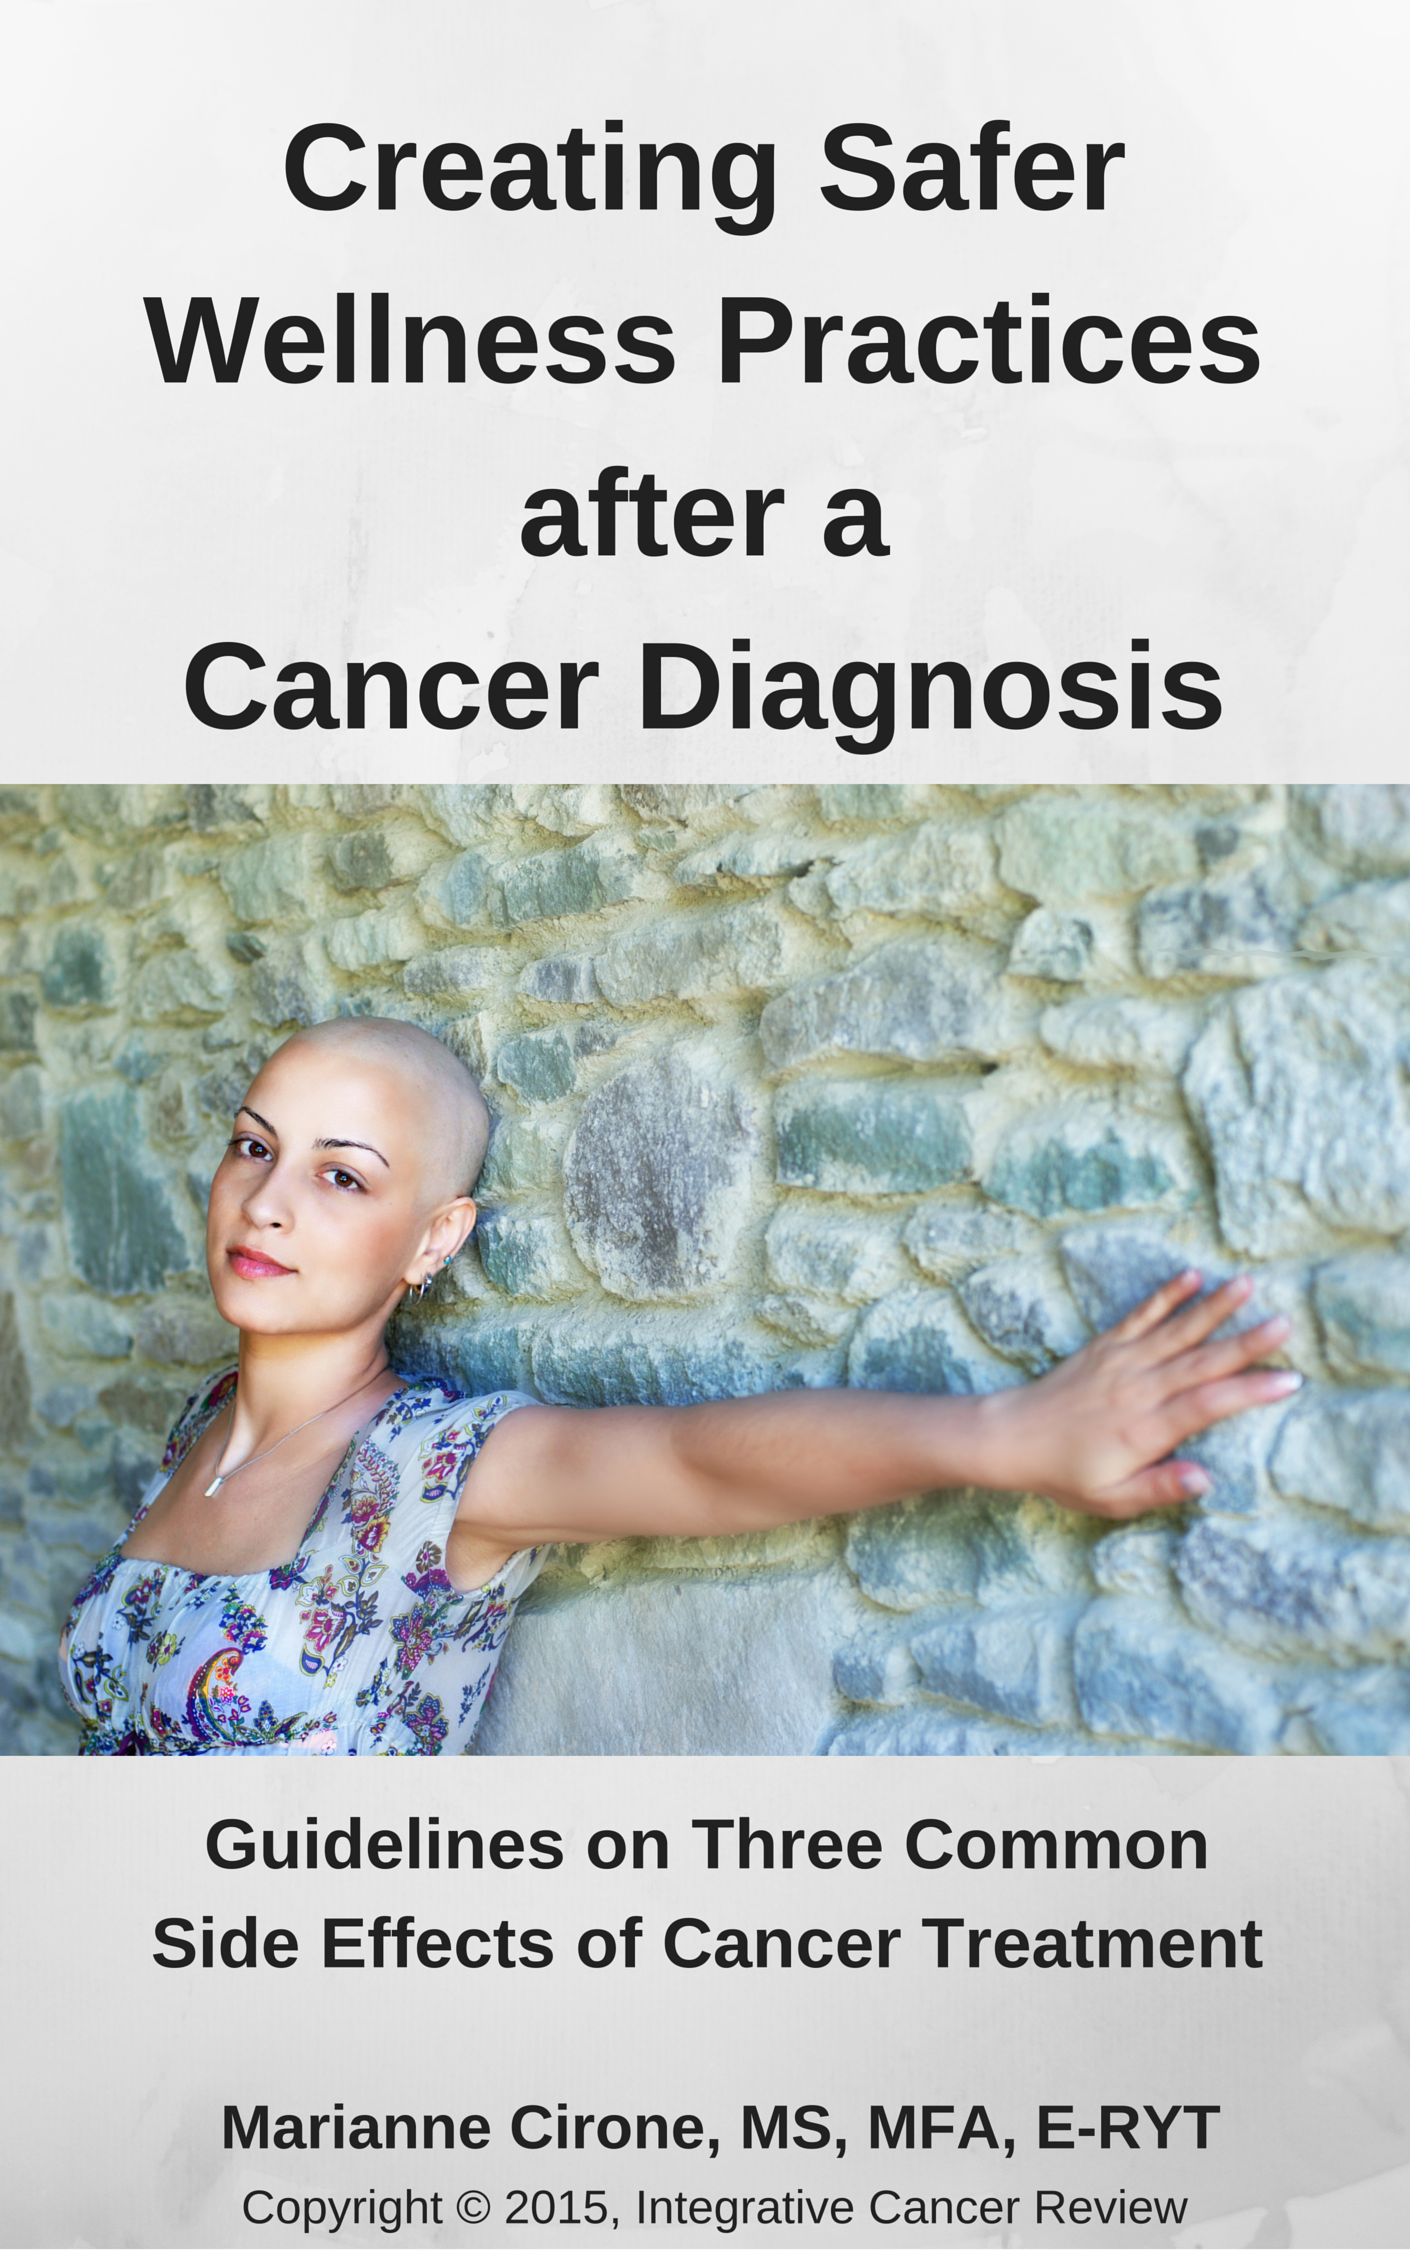 Creating Safer Wellness Practices after a Cancer Diagnosis